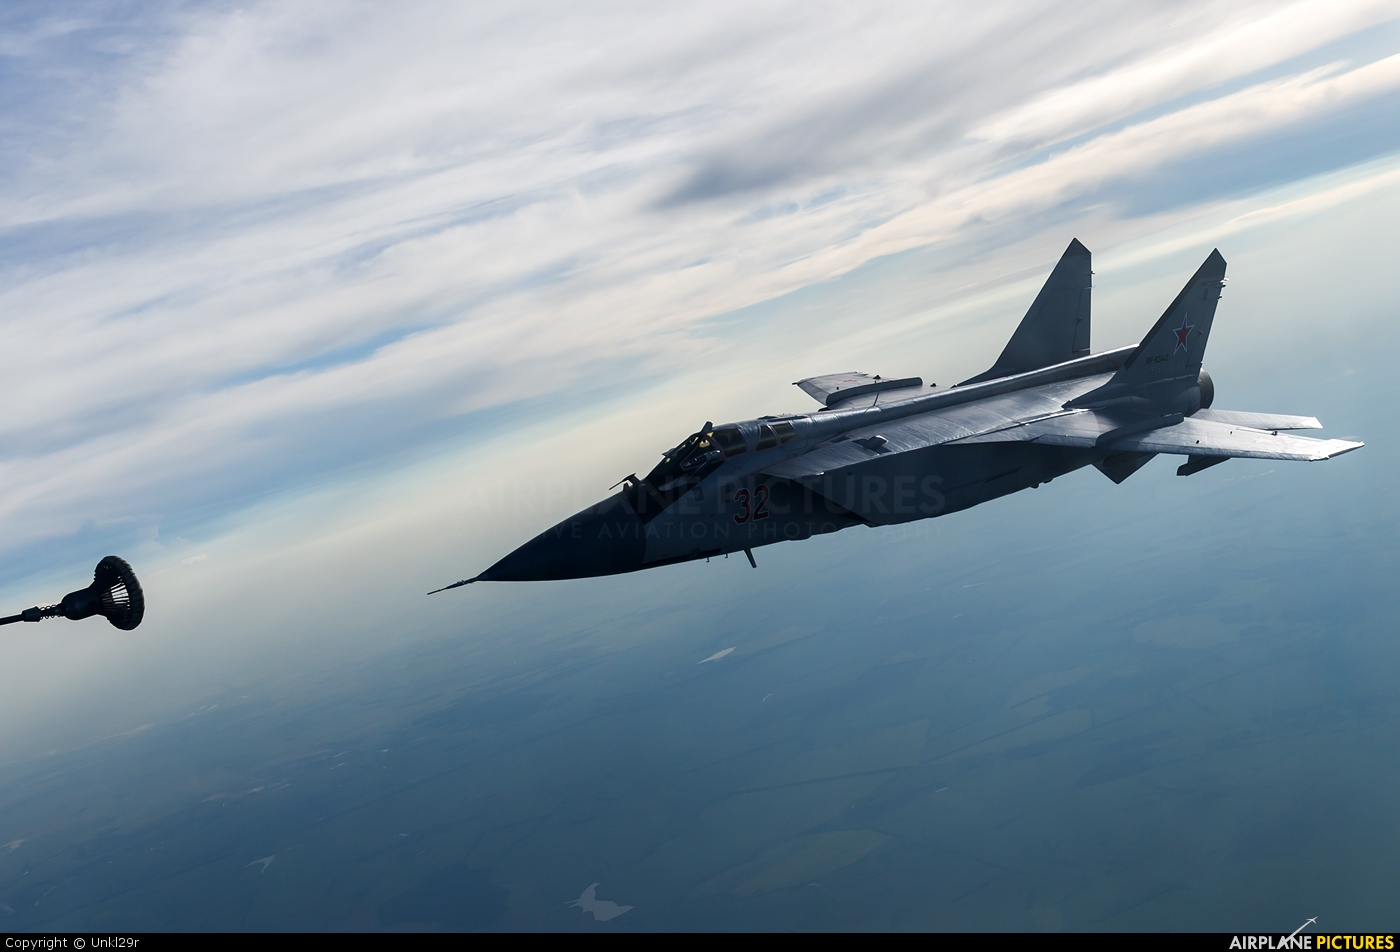 Russia - Air Force 32 aircraft at In Flight - Russia